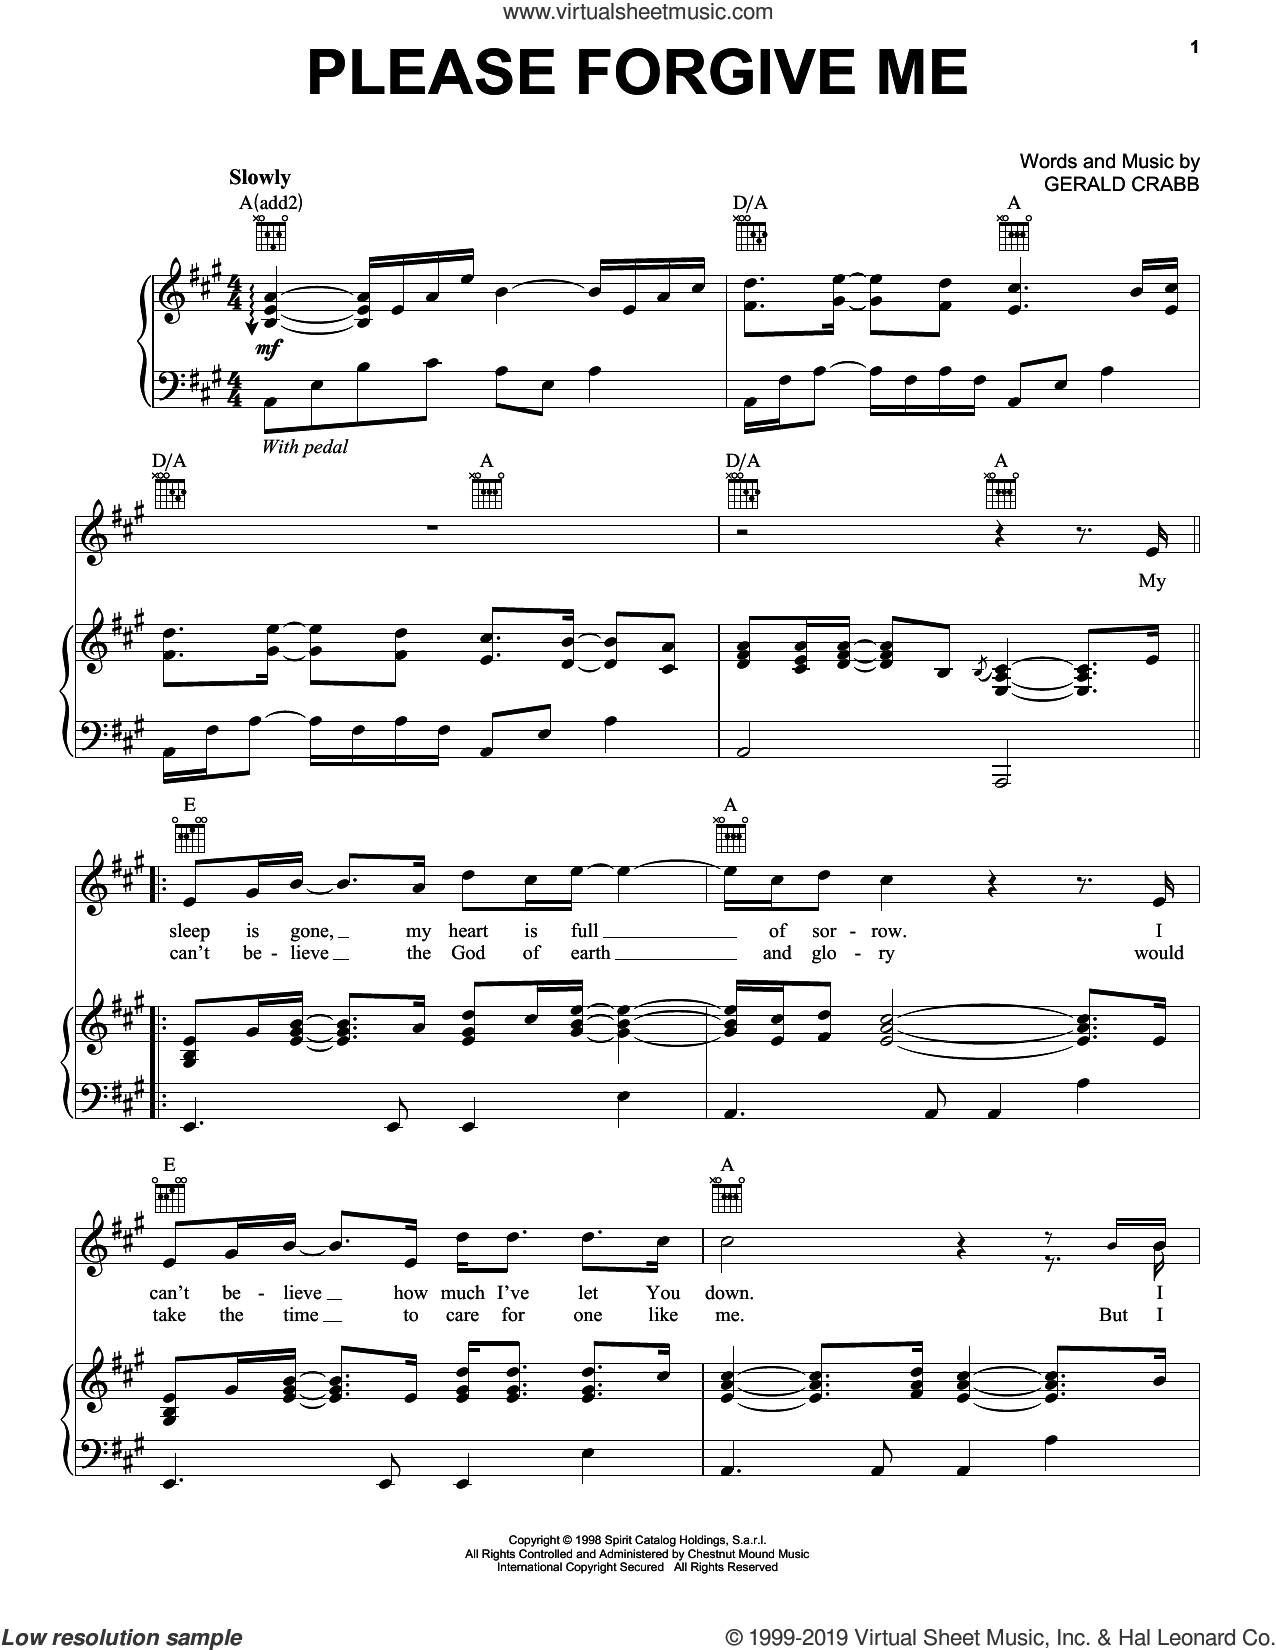 Please Forgive Me sheet music for voice, piano or guitar by The Crabb Family and Gerald Crabb, intermediate skill level